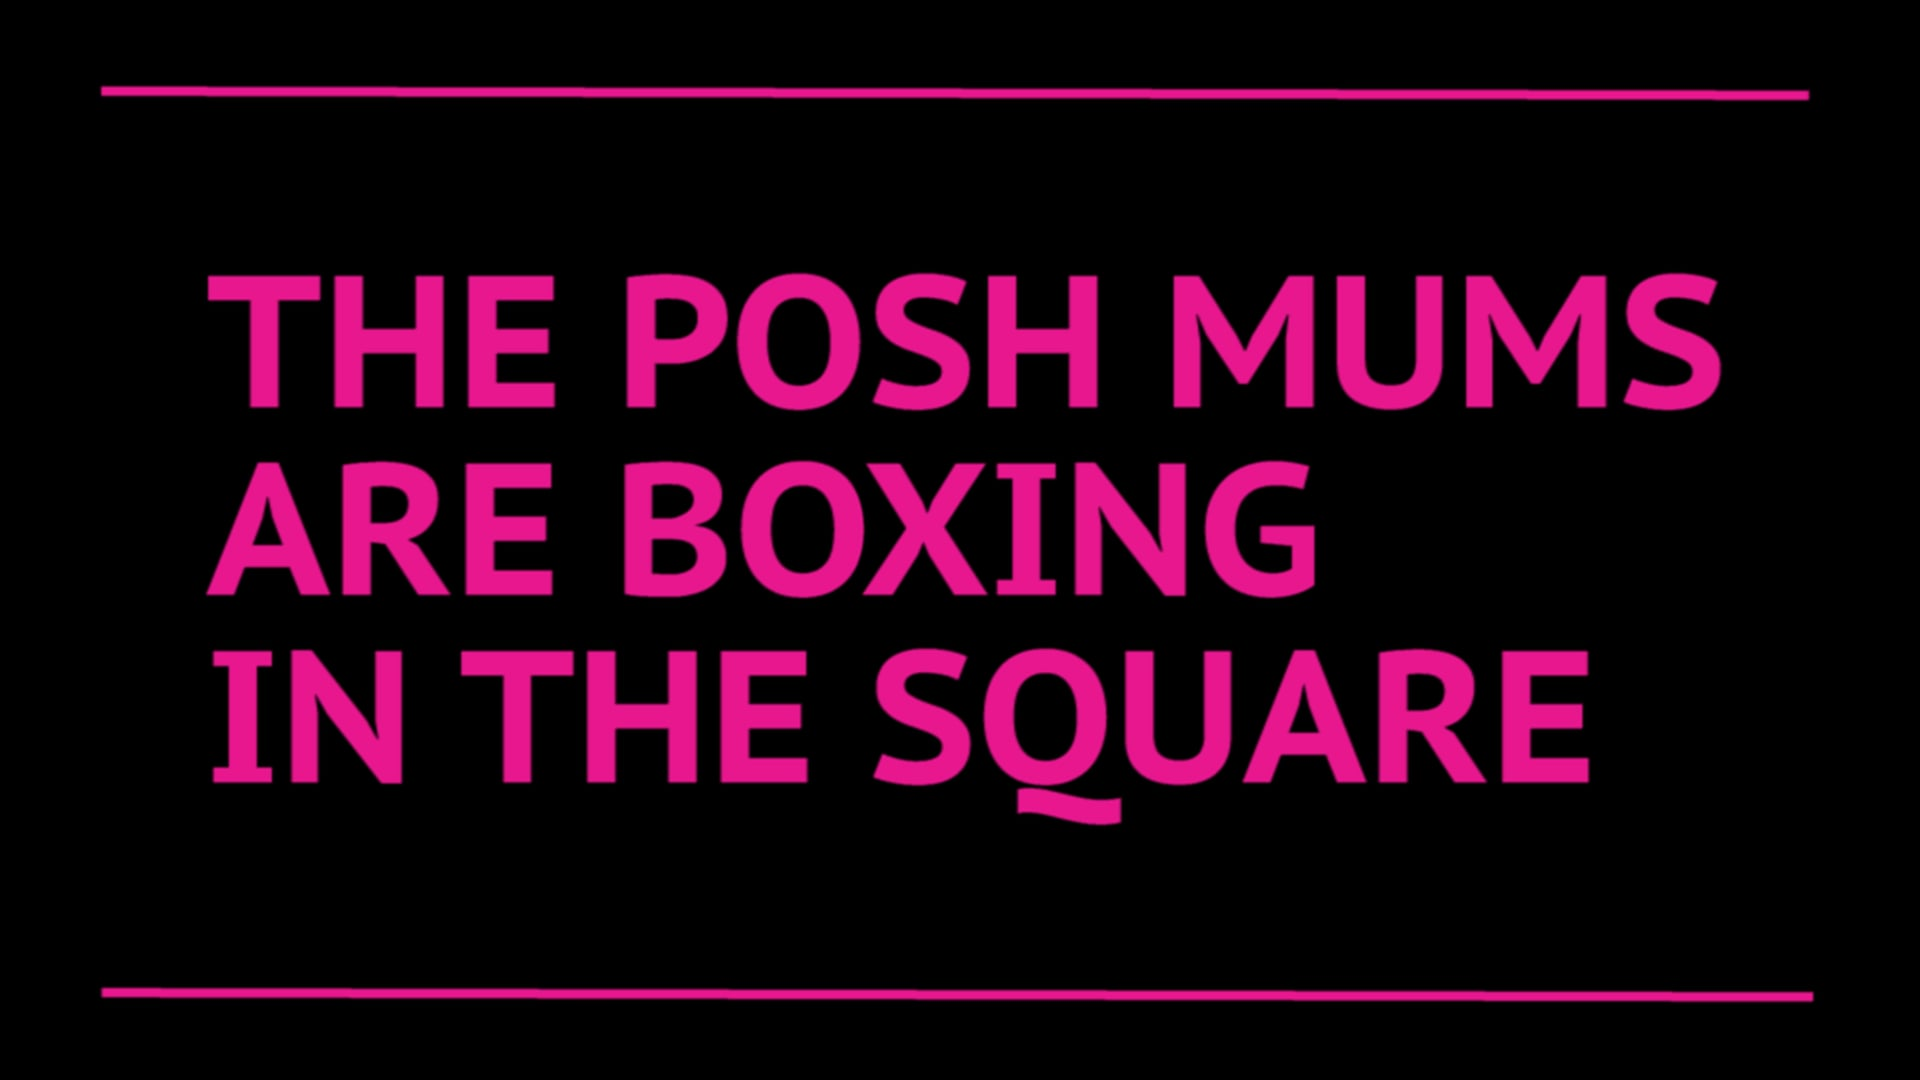 The posh mums are boxing in the square   Poem by Wayne Holloway-Smith   Film by Helmie Still